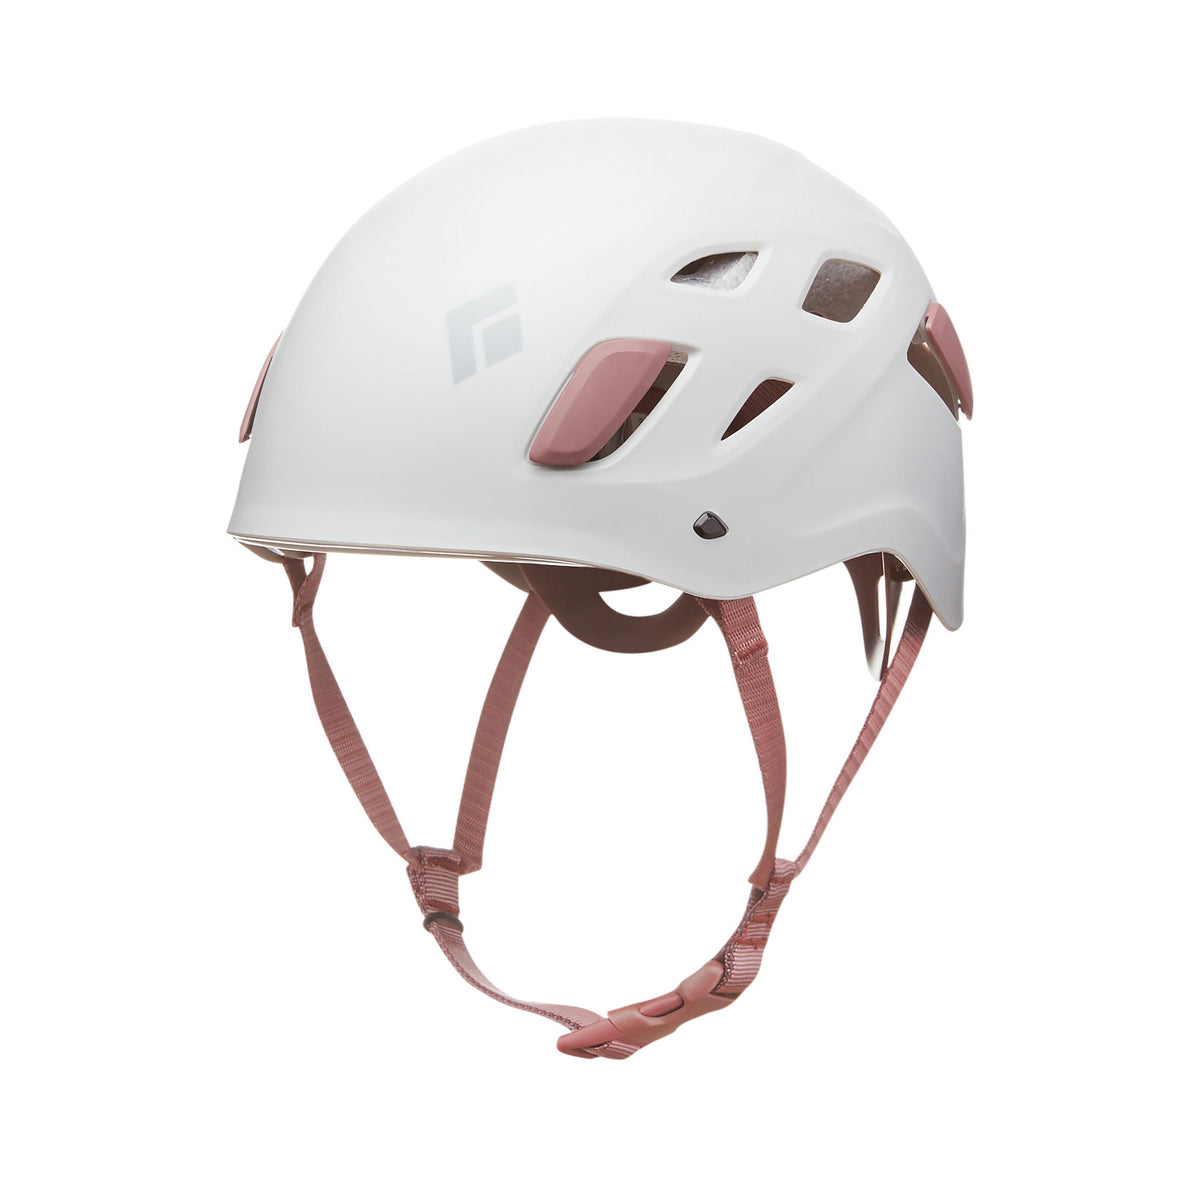 Black Diamond Half Dome Womens climbing helmet, front/side view, in white colour